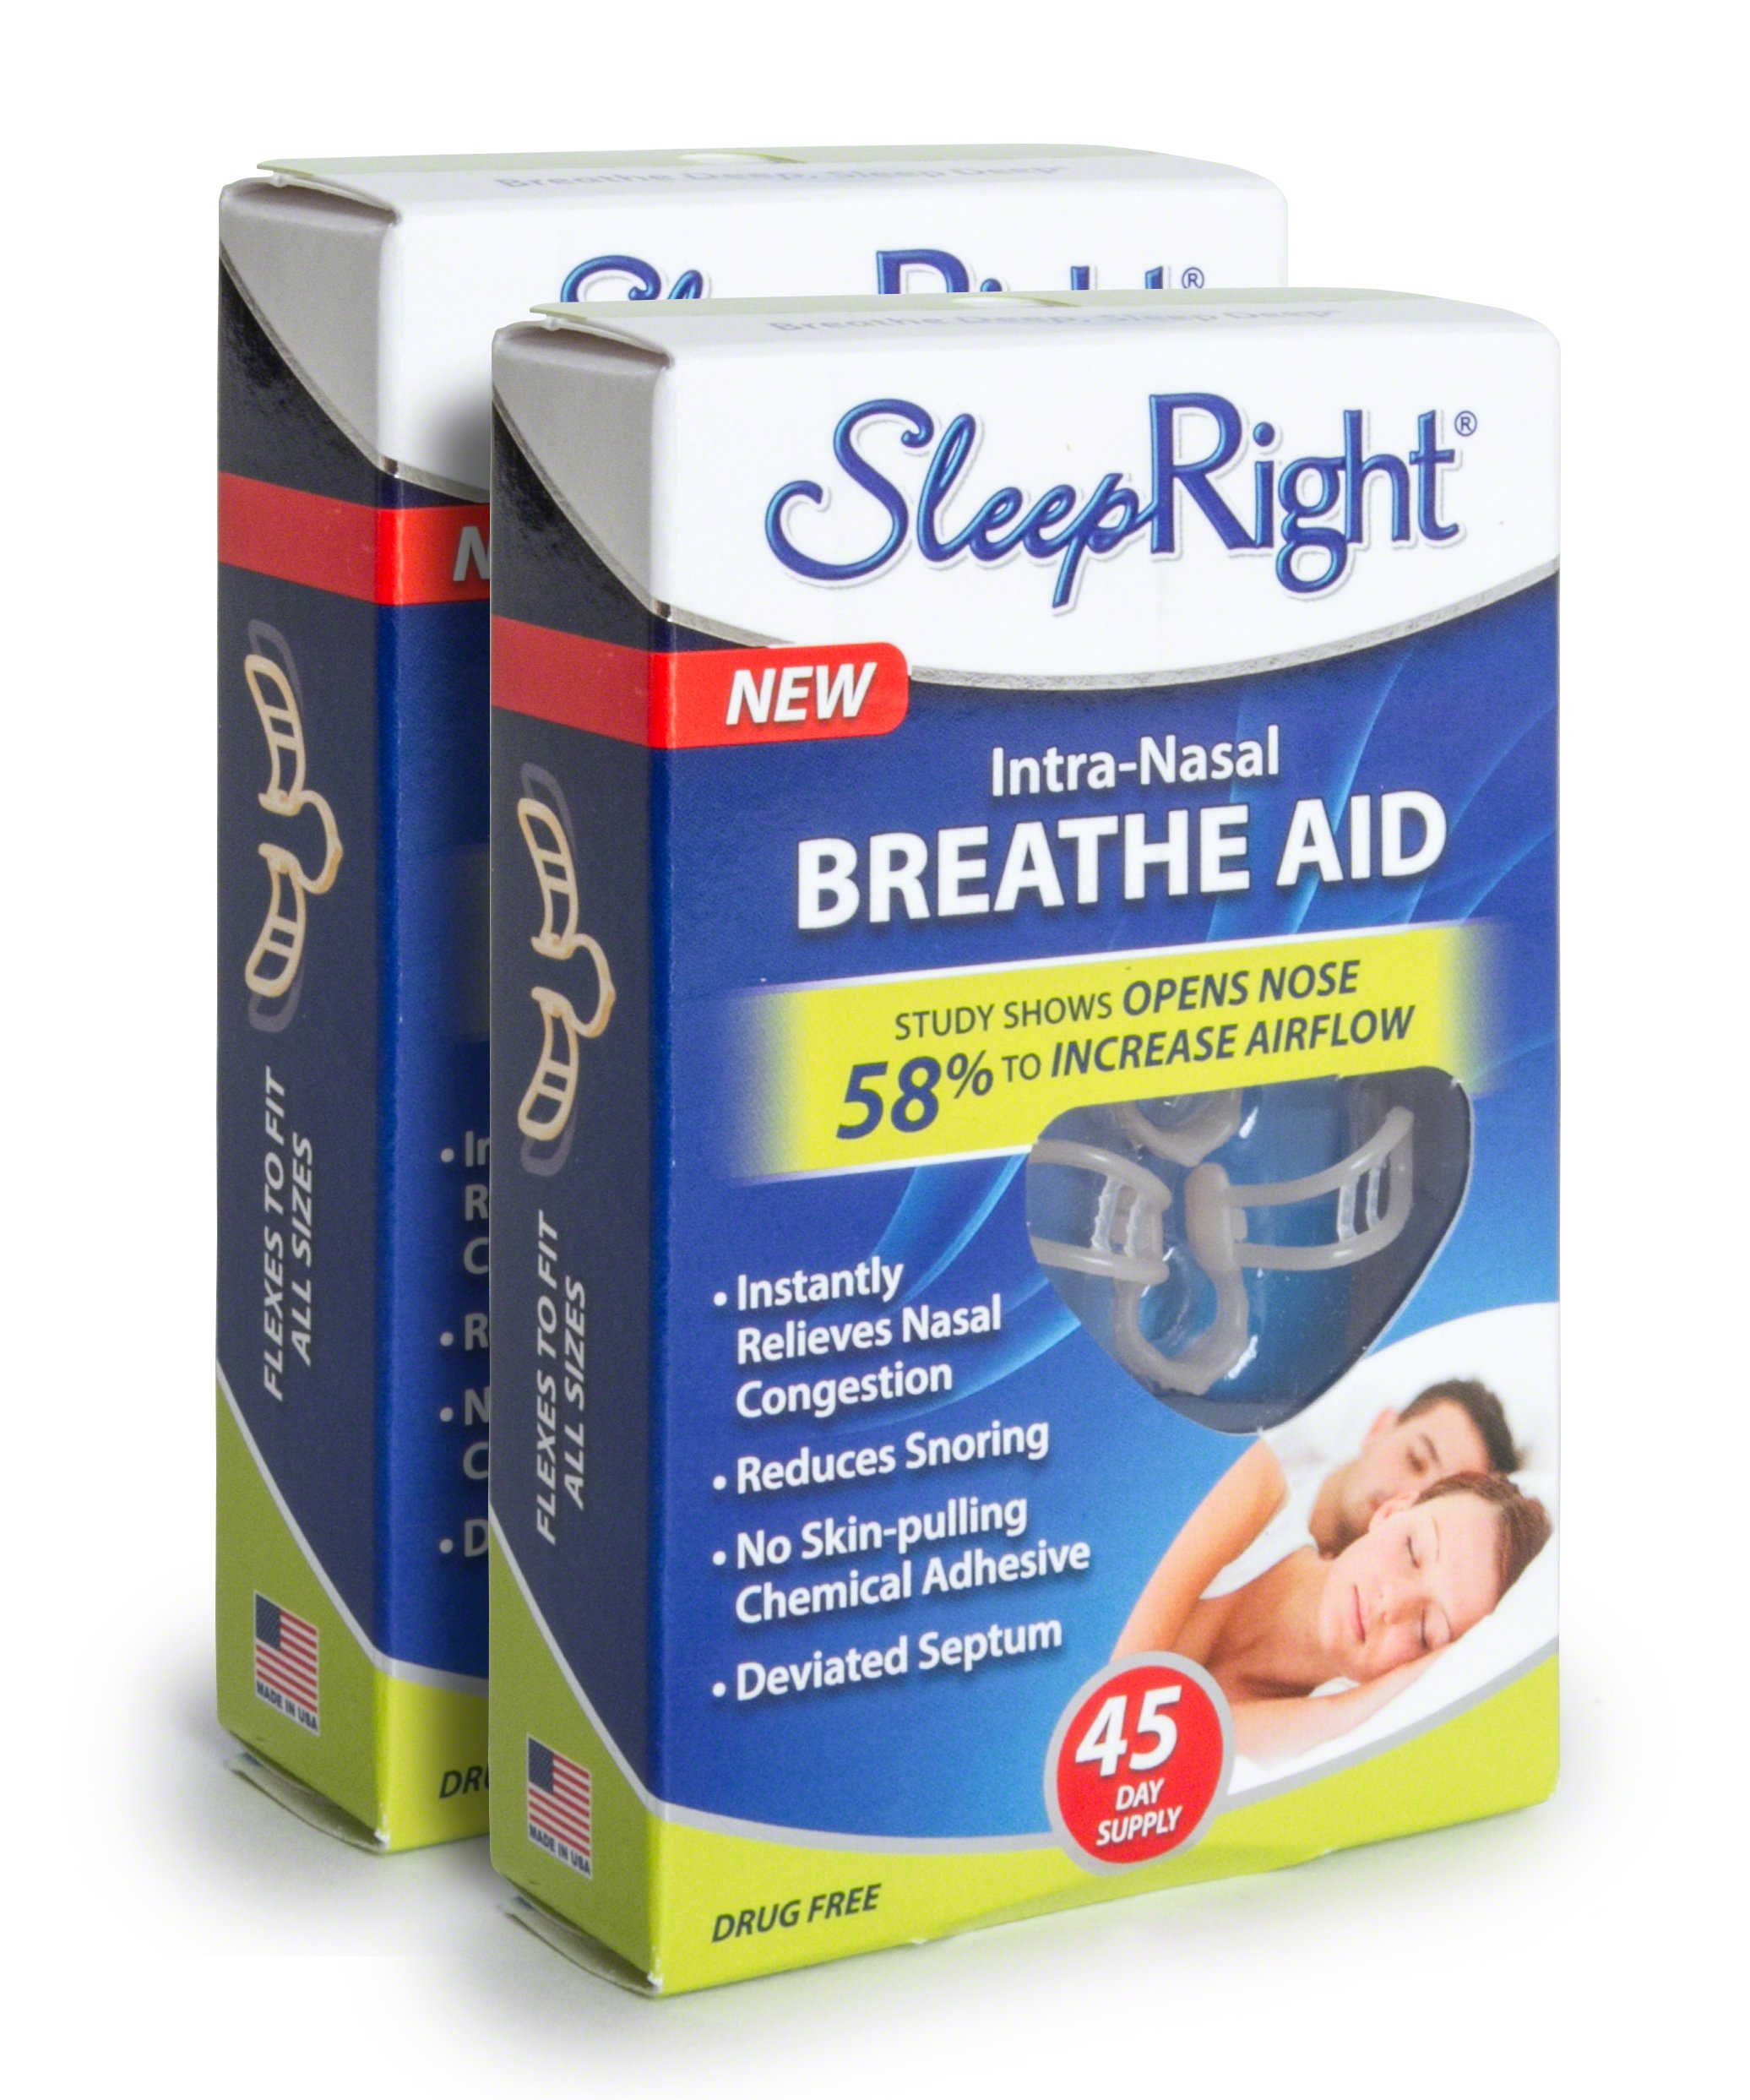 SleepRight Intra-Nasal Breathe Aids – Breathing Aids For Sleep – Nasal Dilator – 45 Day - 2 Pack